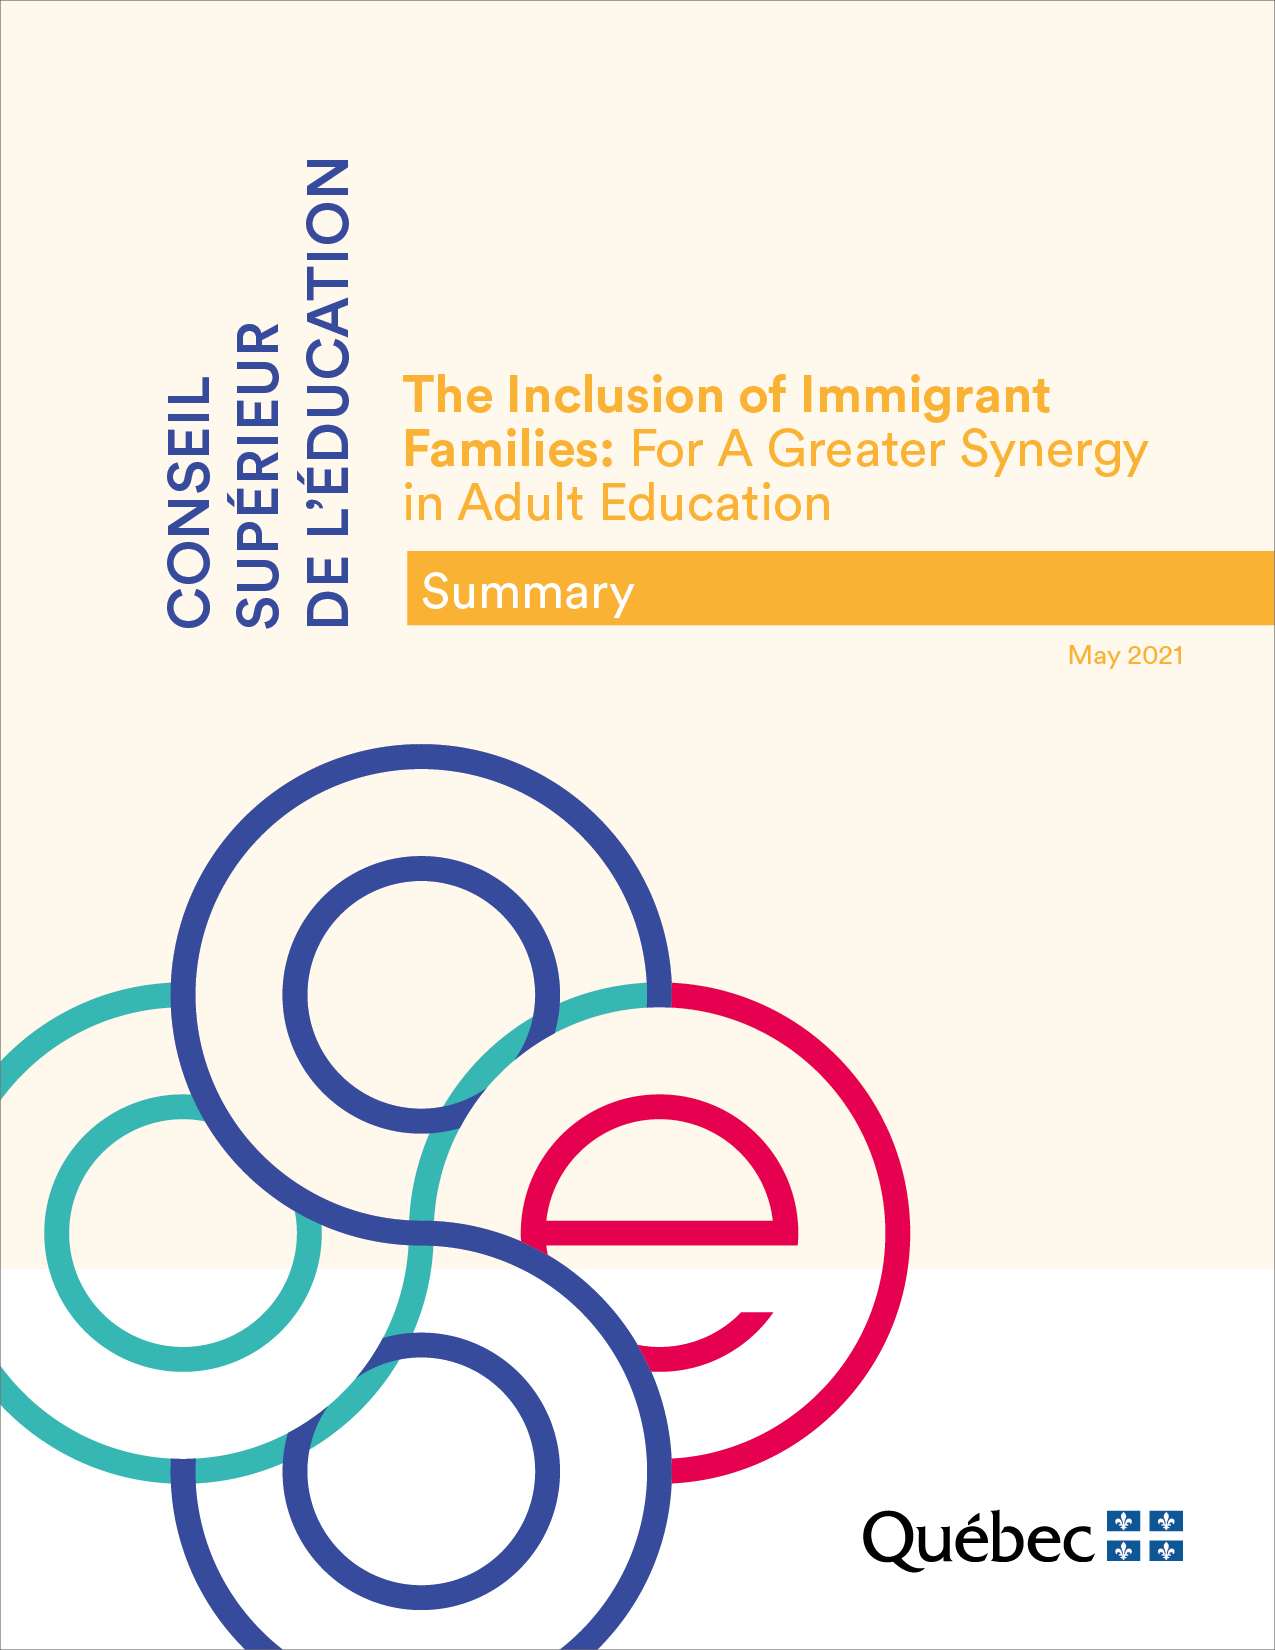 The Inclusion of Immigrant Families: For A Greater Synergy in Adult Education